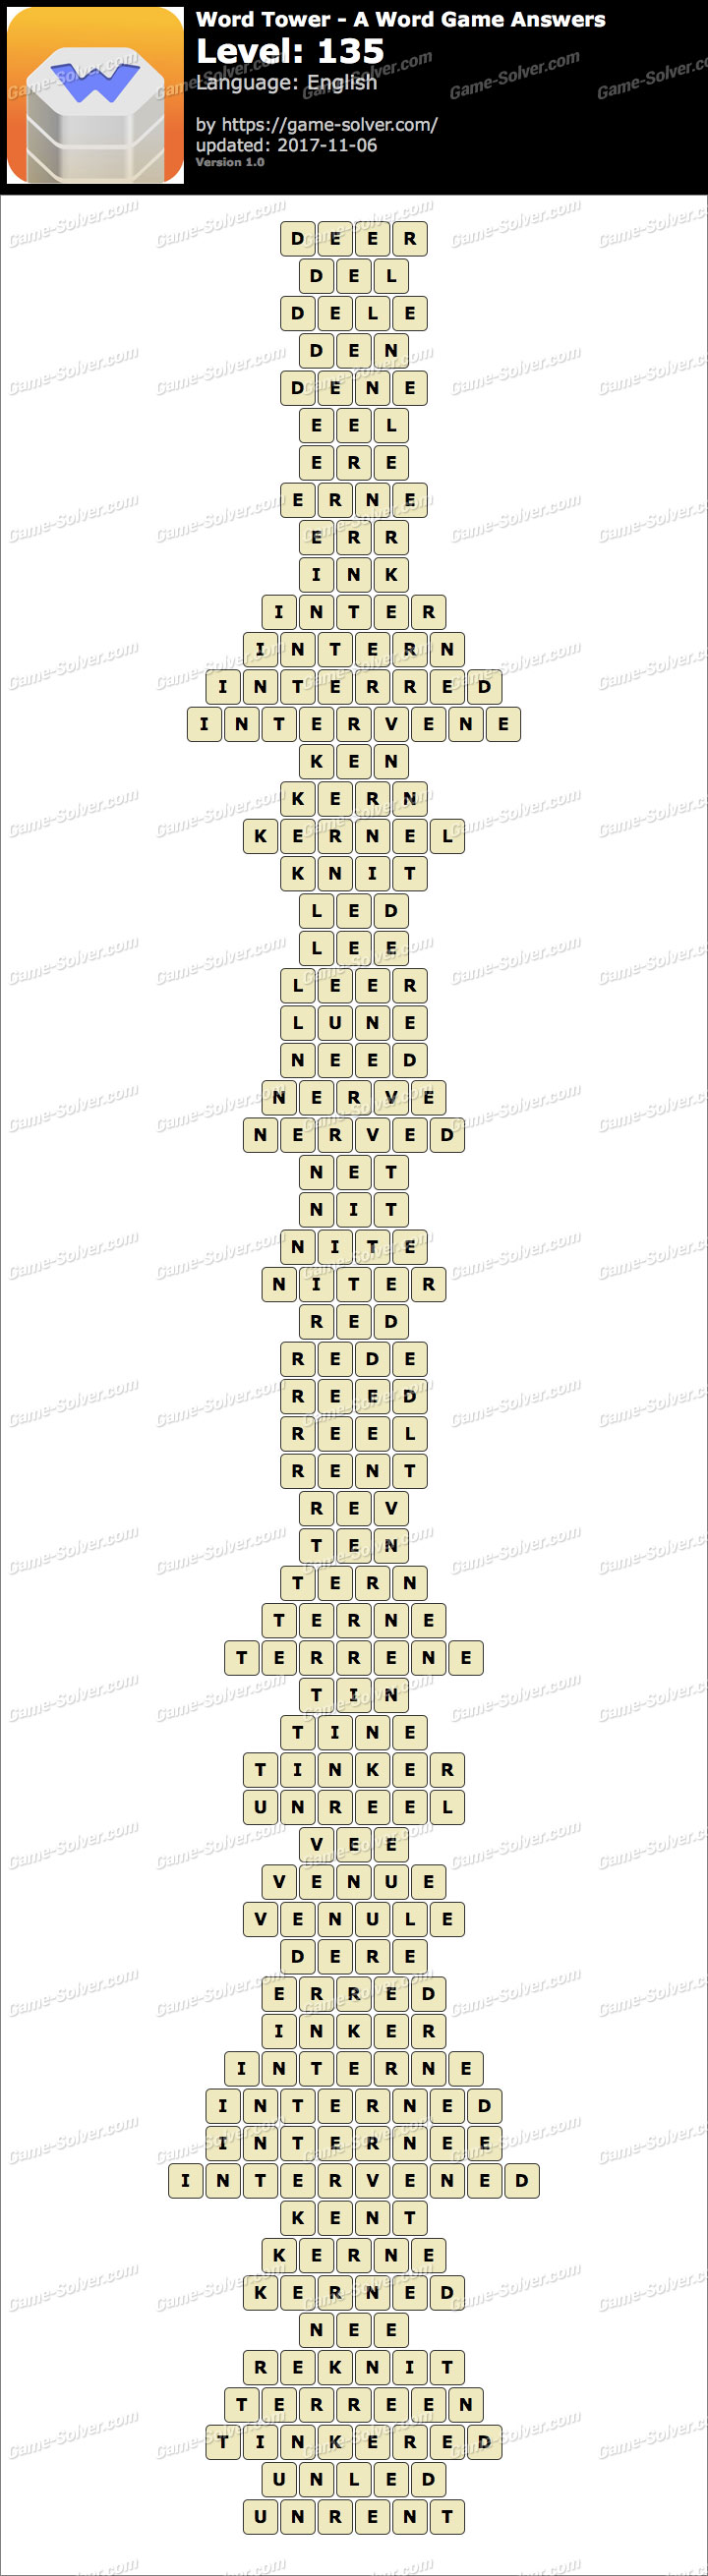 Word Tower Level 135 Answers